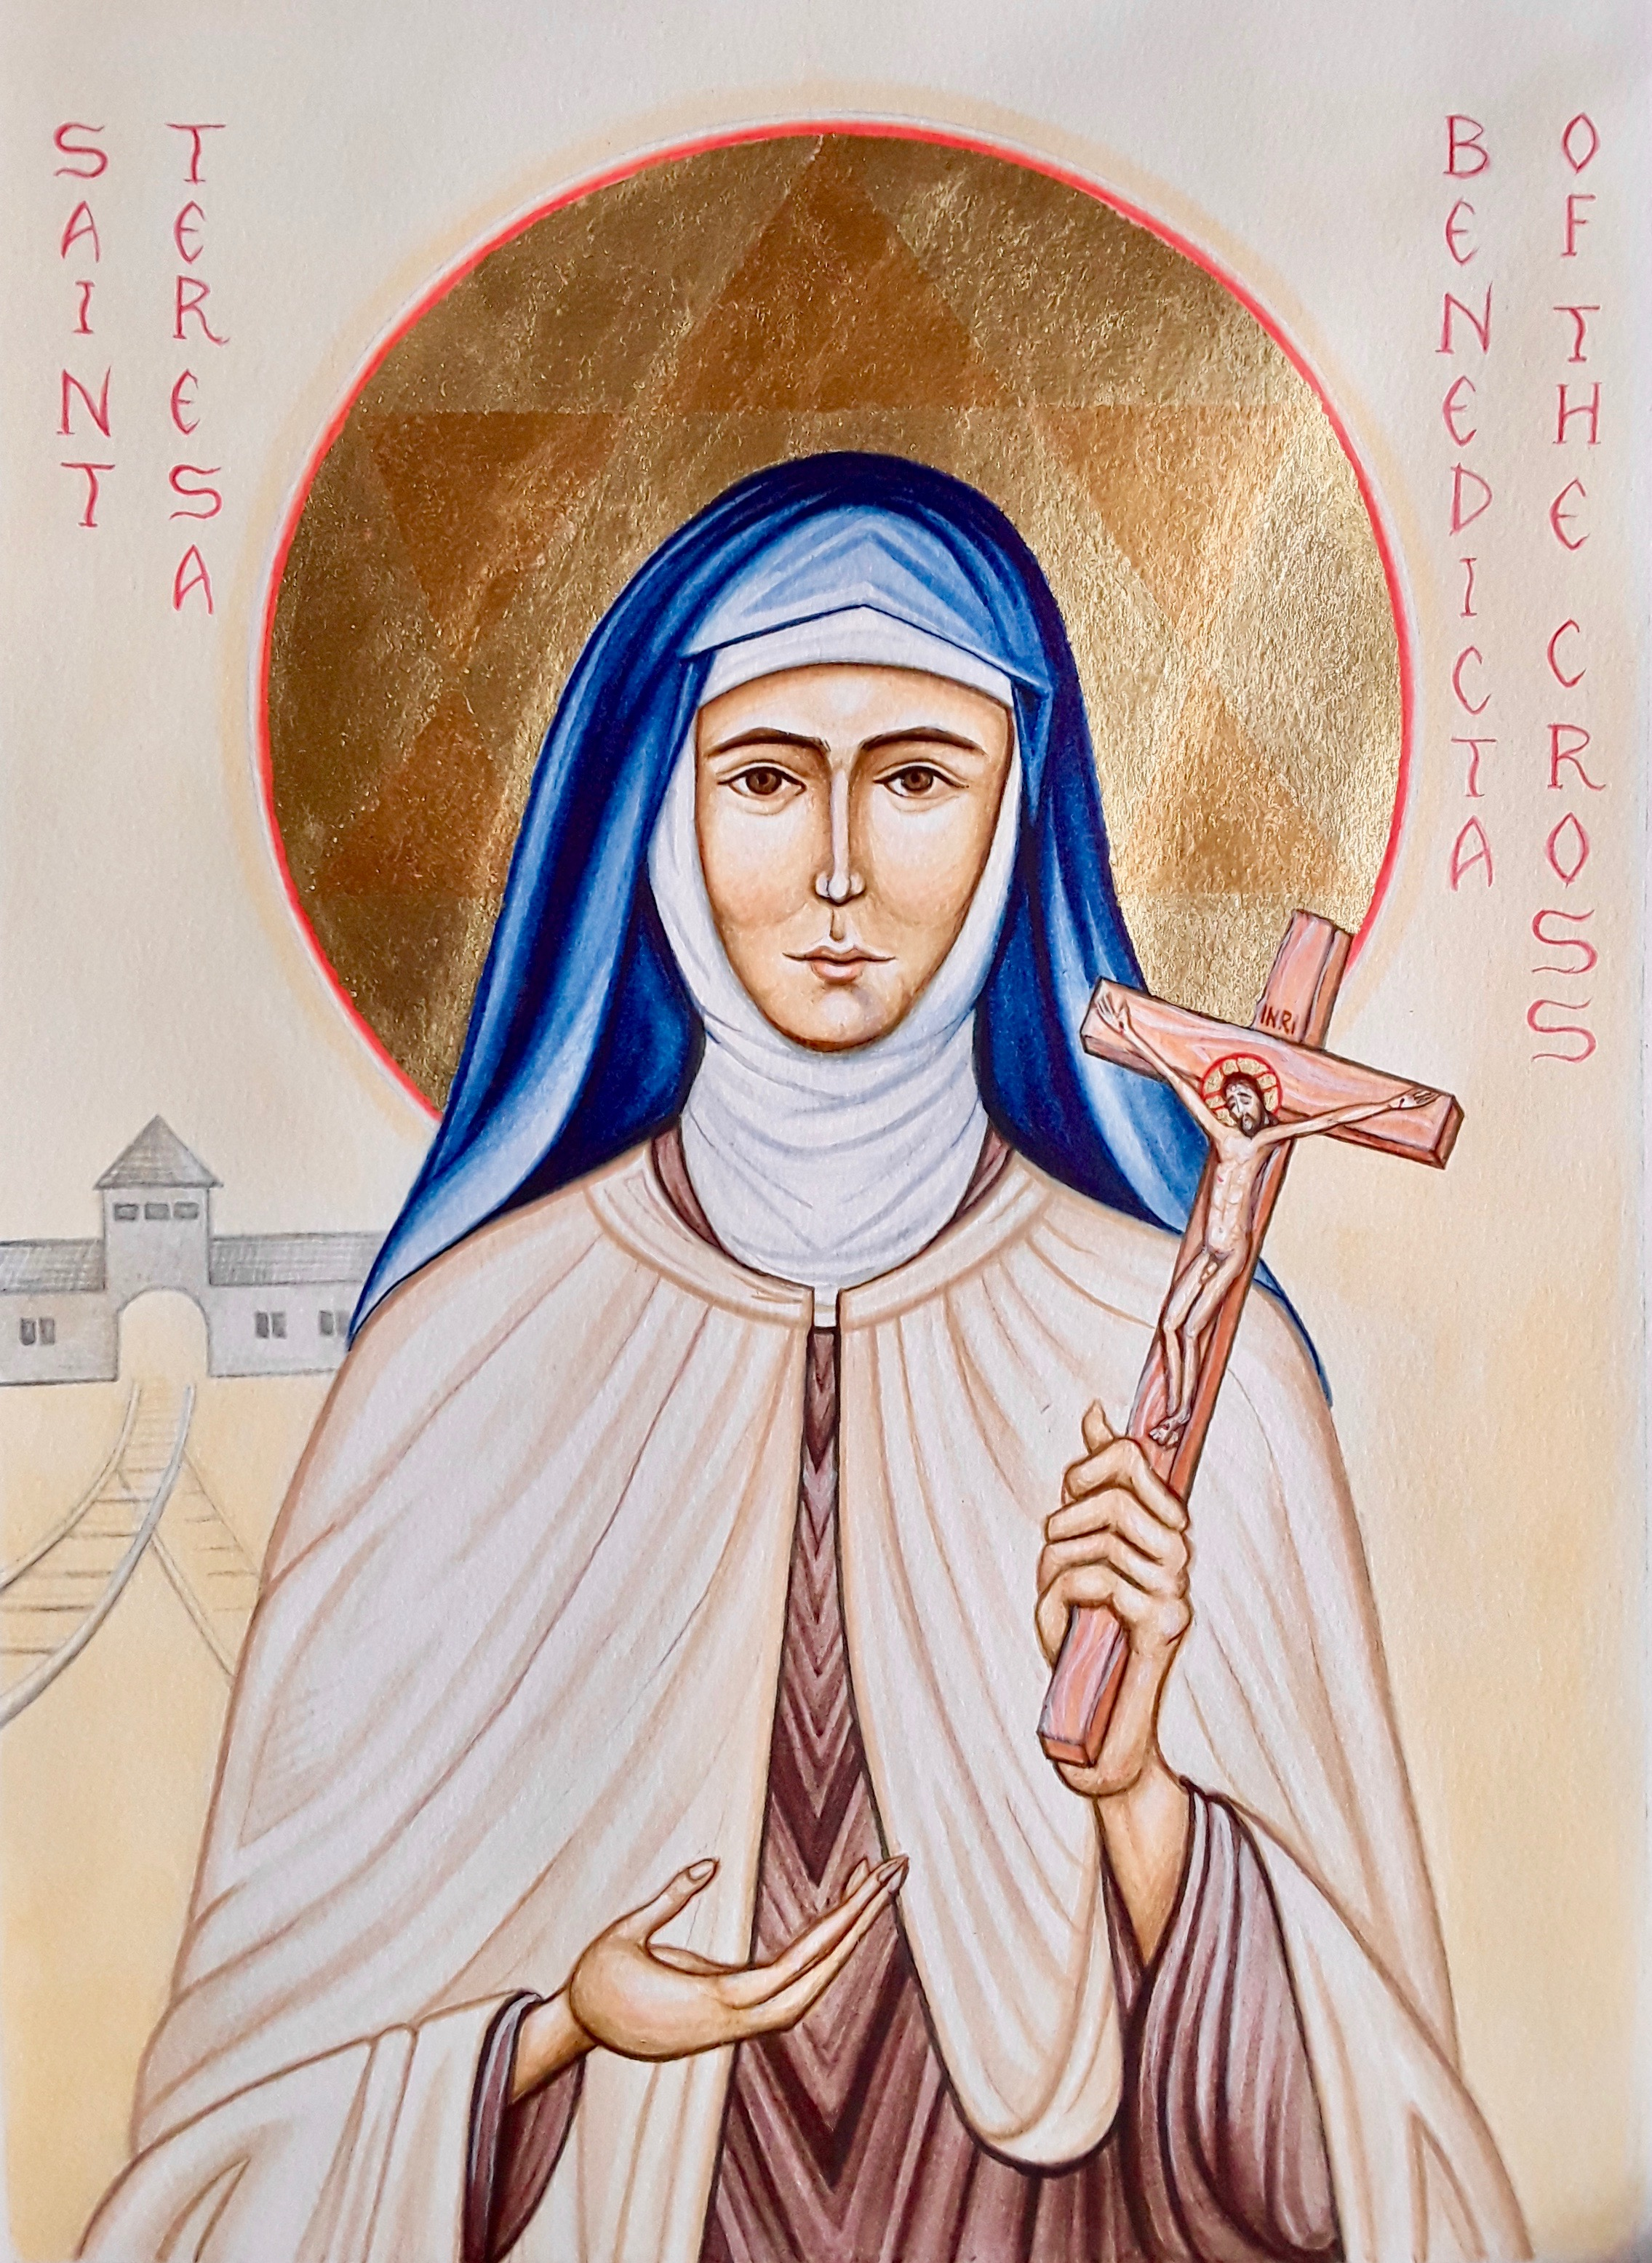 Saint Teresa Benedicta of the Cross.   Acrylics and gold leaf on water colour paper. 297 x 420 mm.   2019.